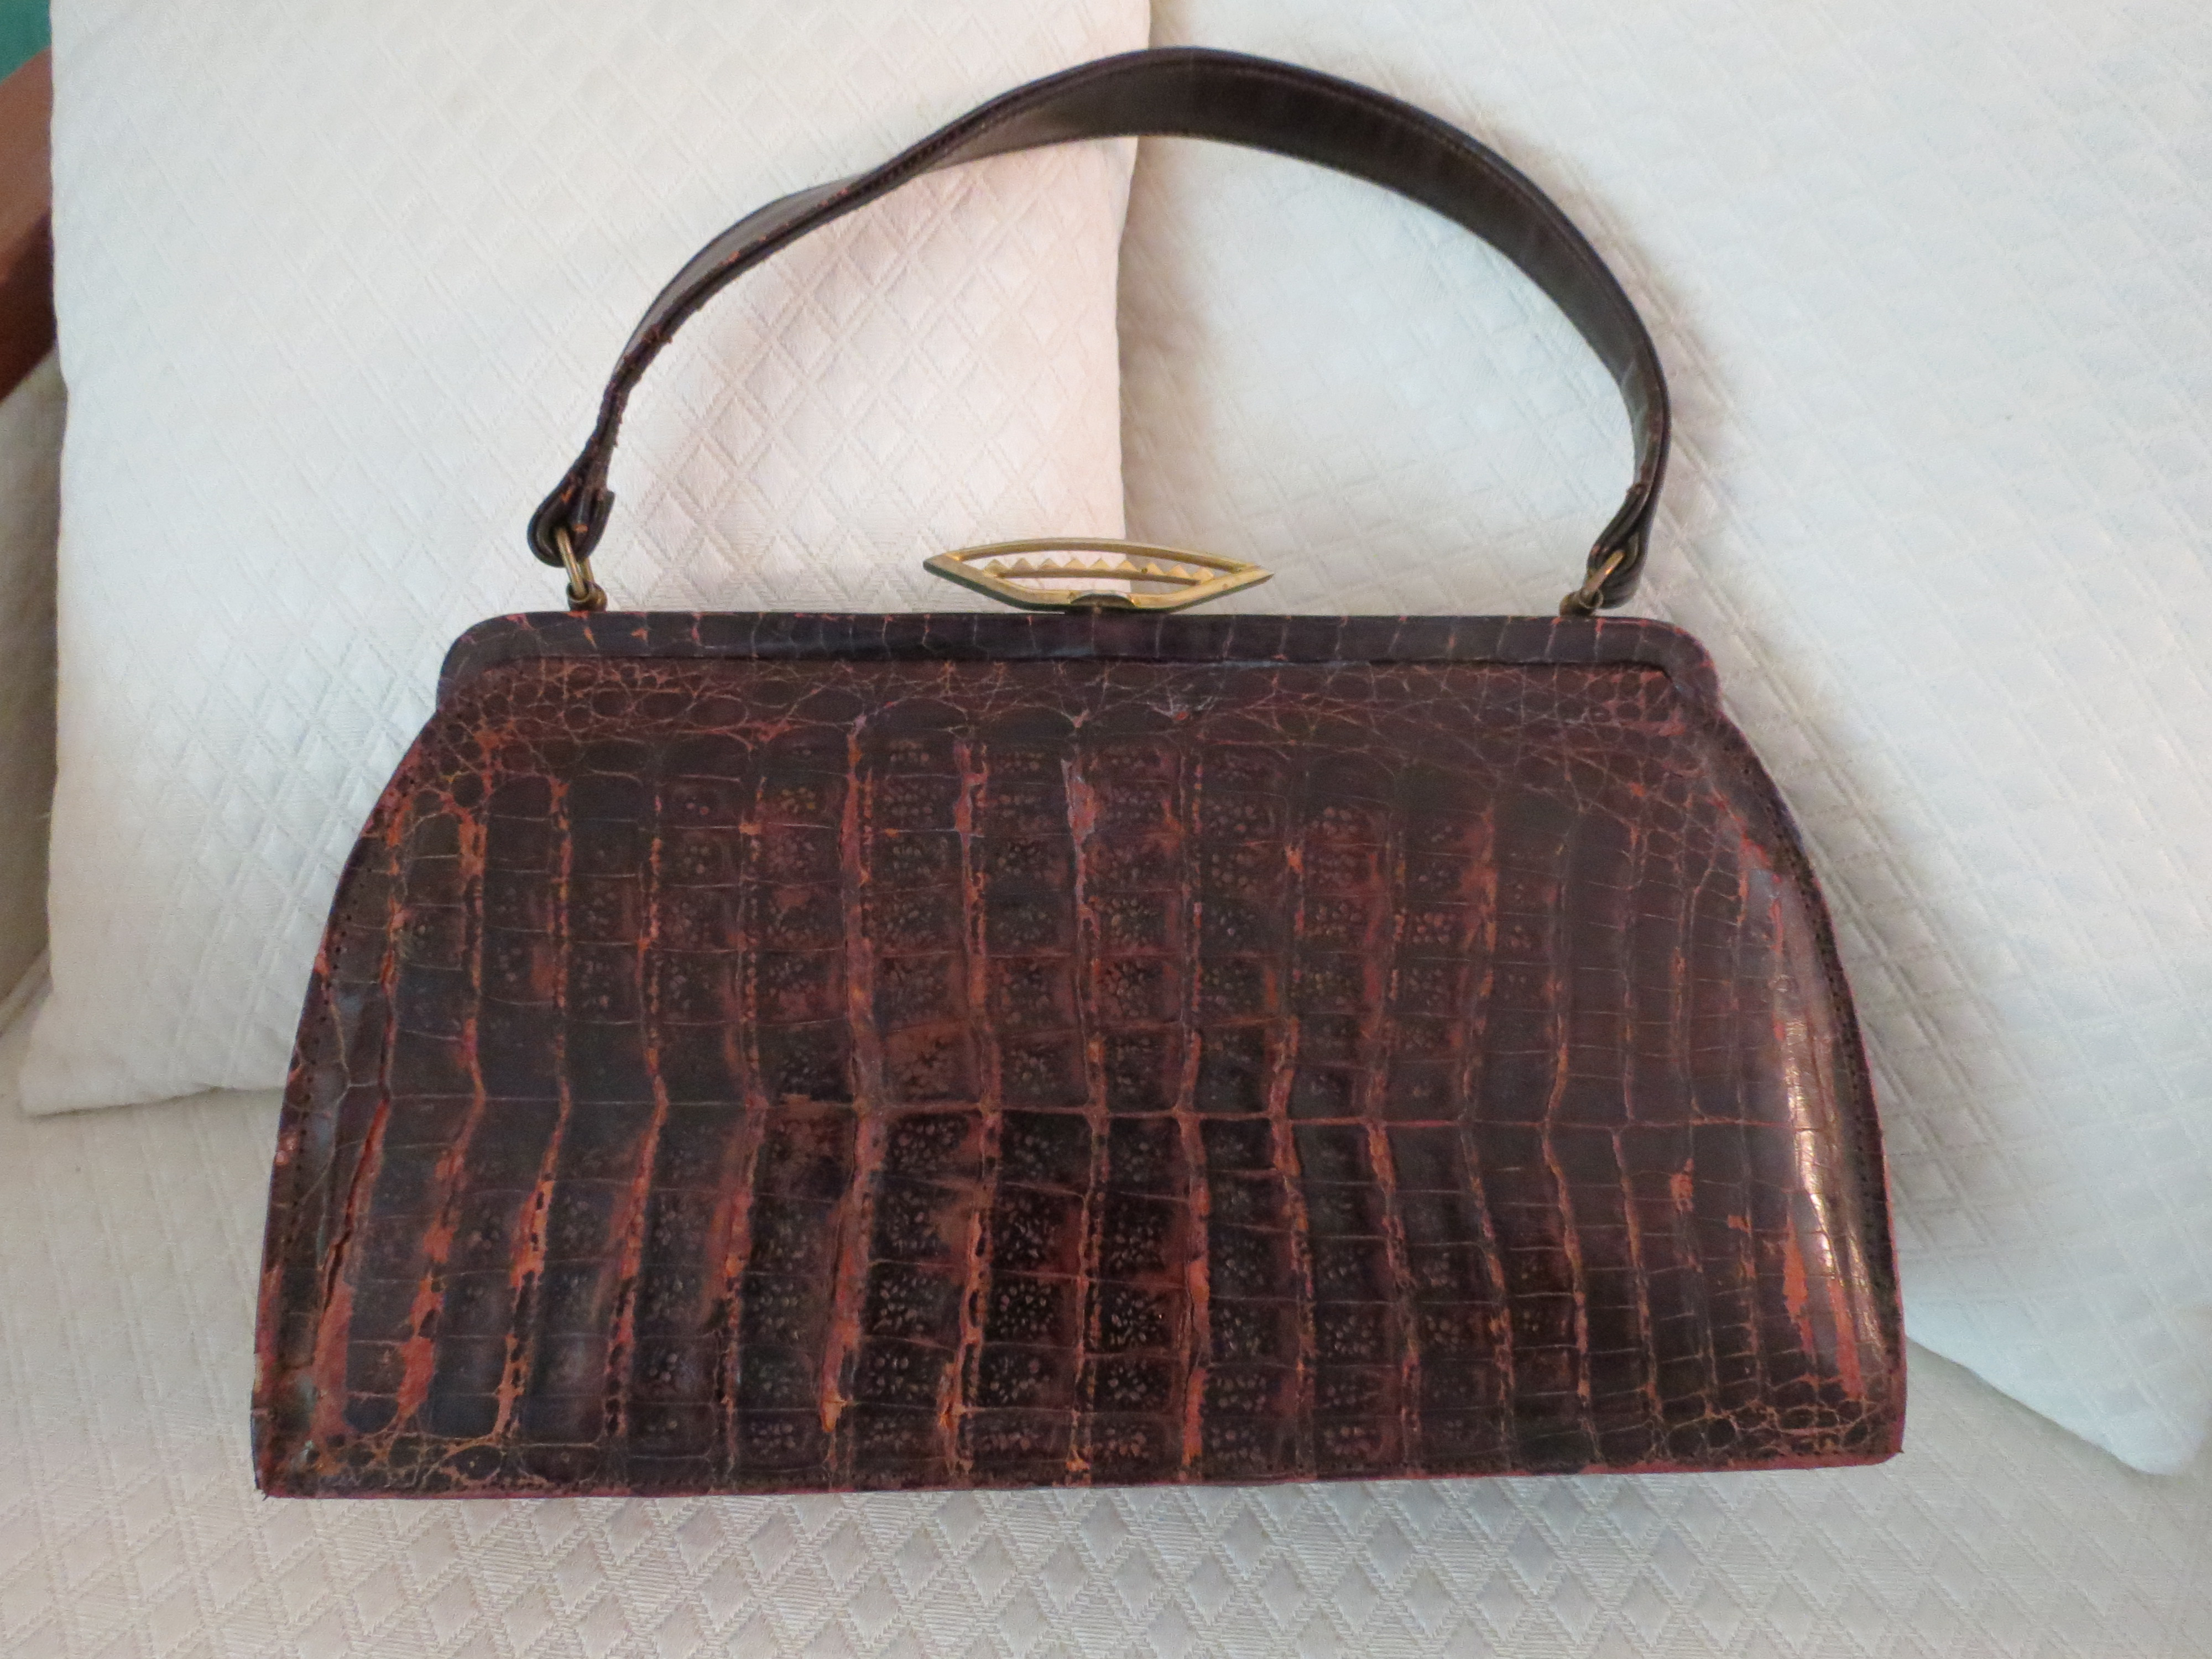 TRUE VINTAGE GENUINE ALLIGATOR HANDBAG 1940S - 1950S